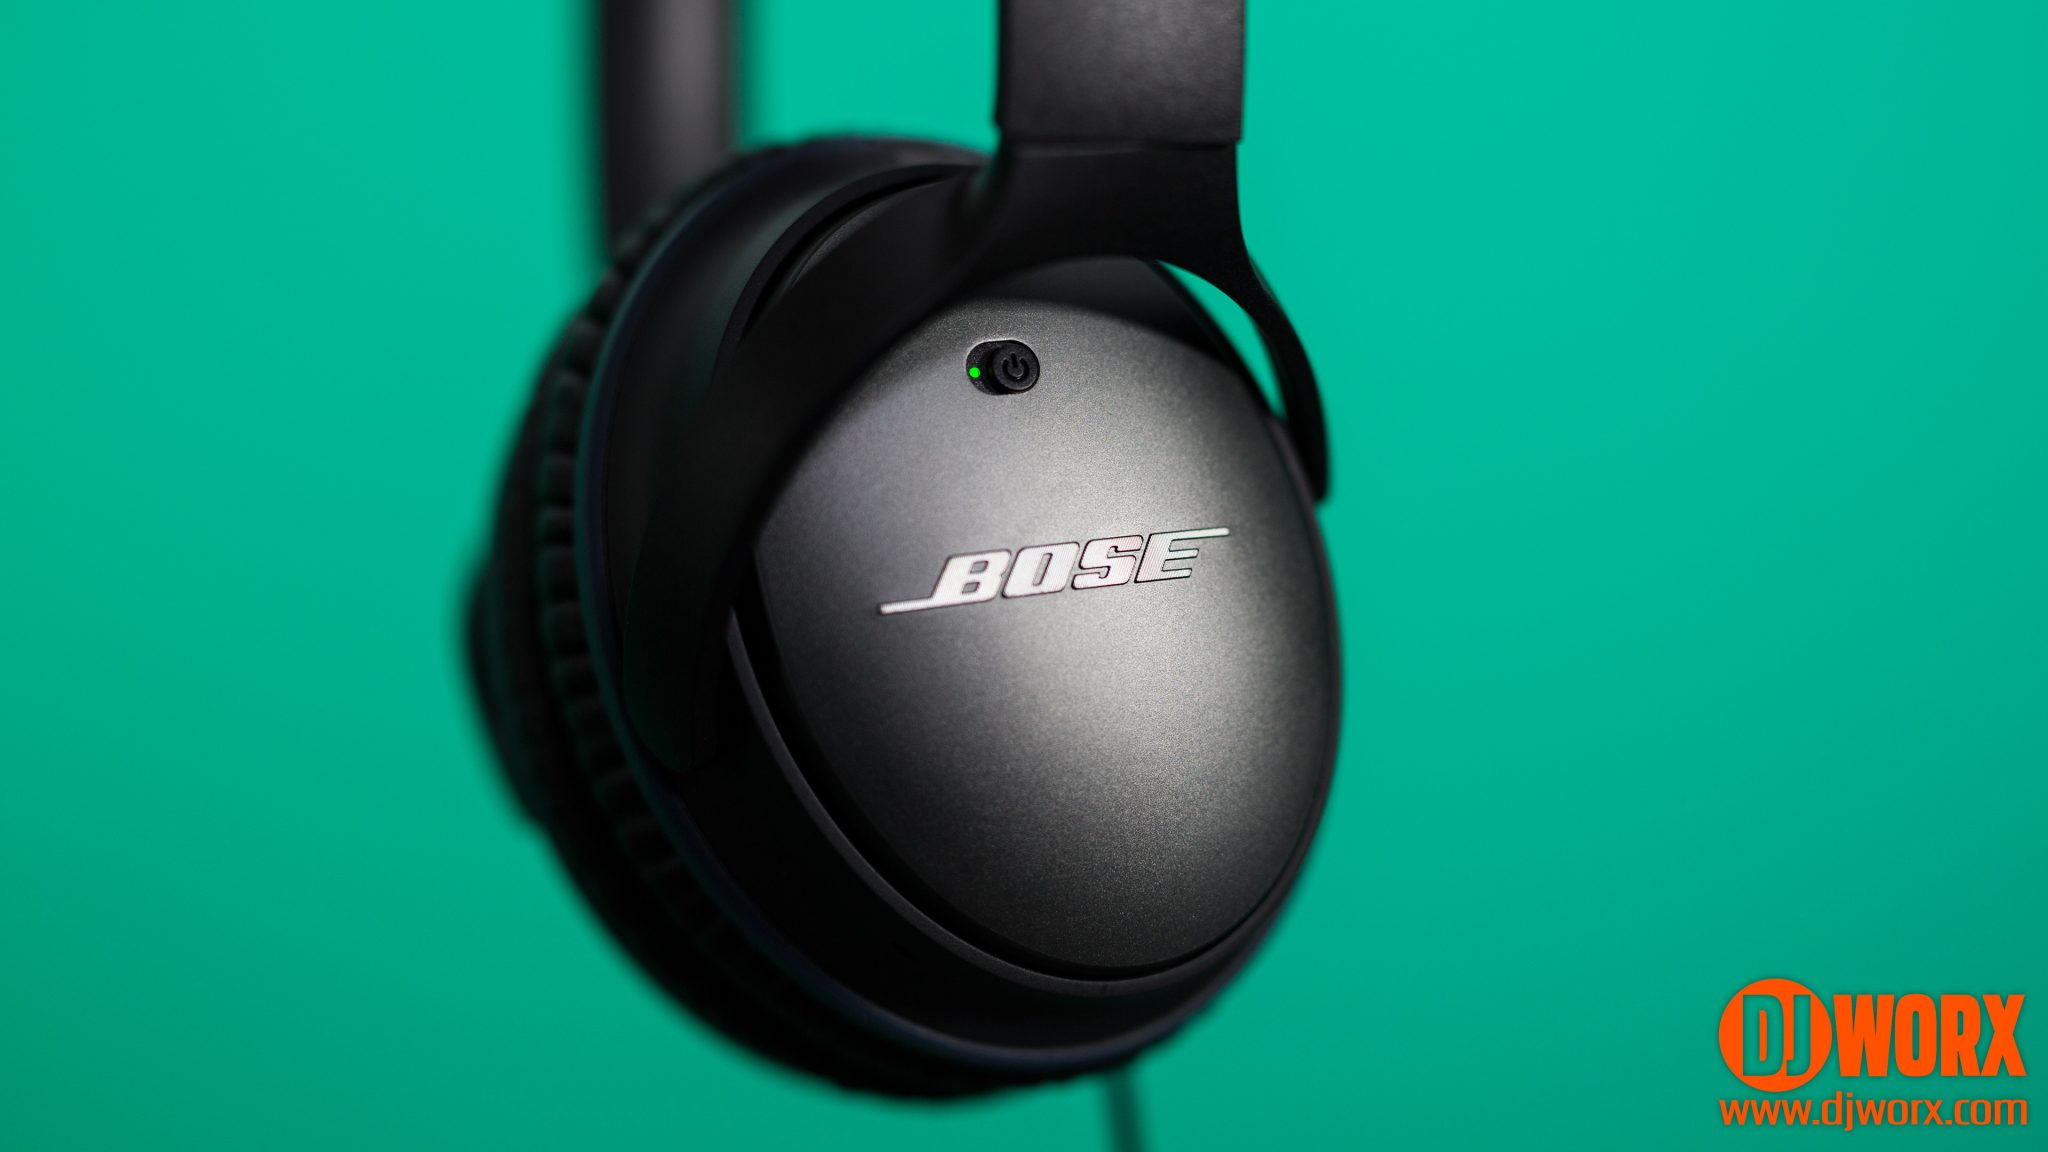 REVIEW: Bose QC20 and QC25 noise-cancelling headphones 5